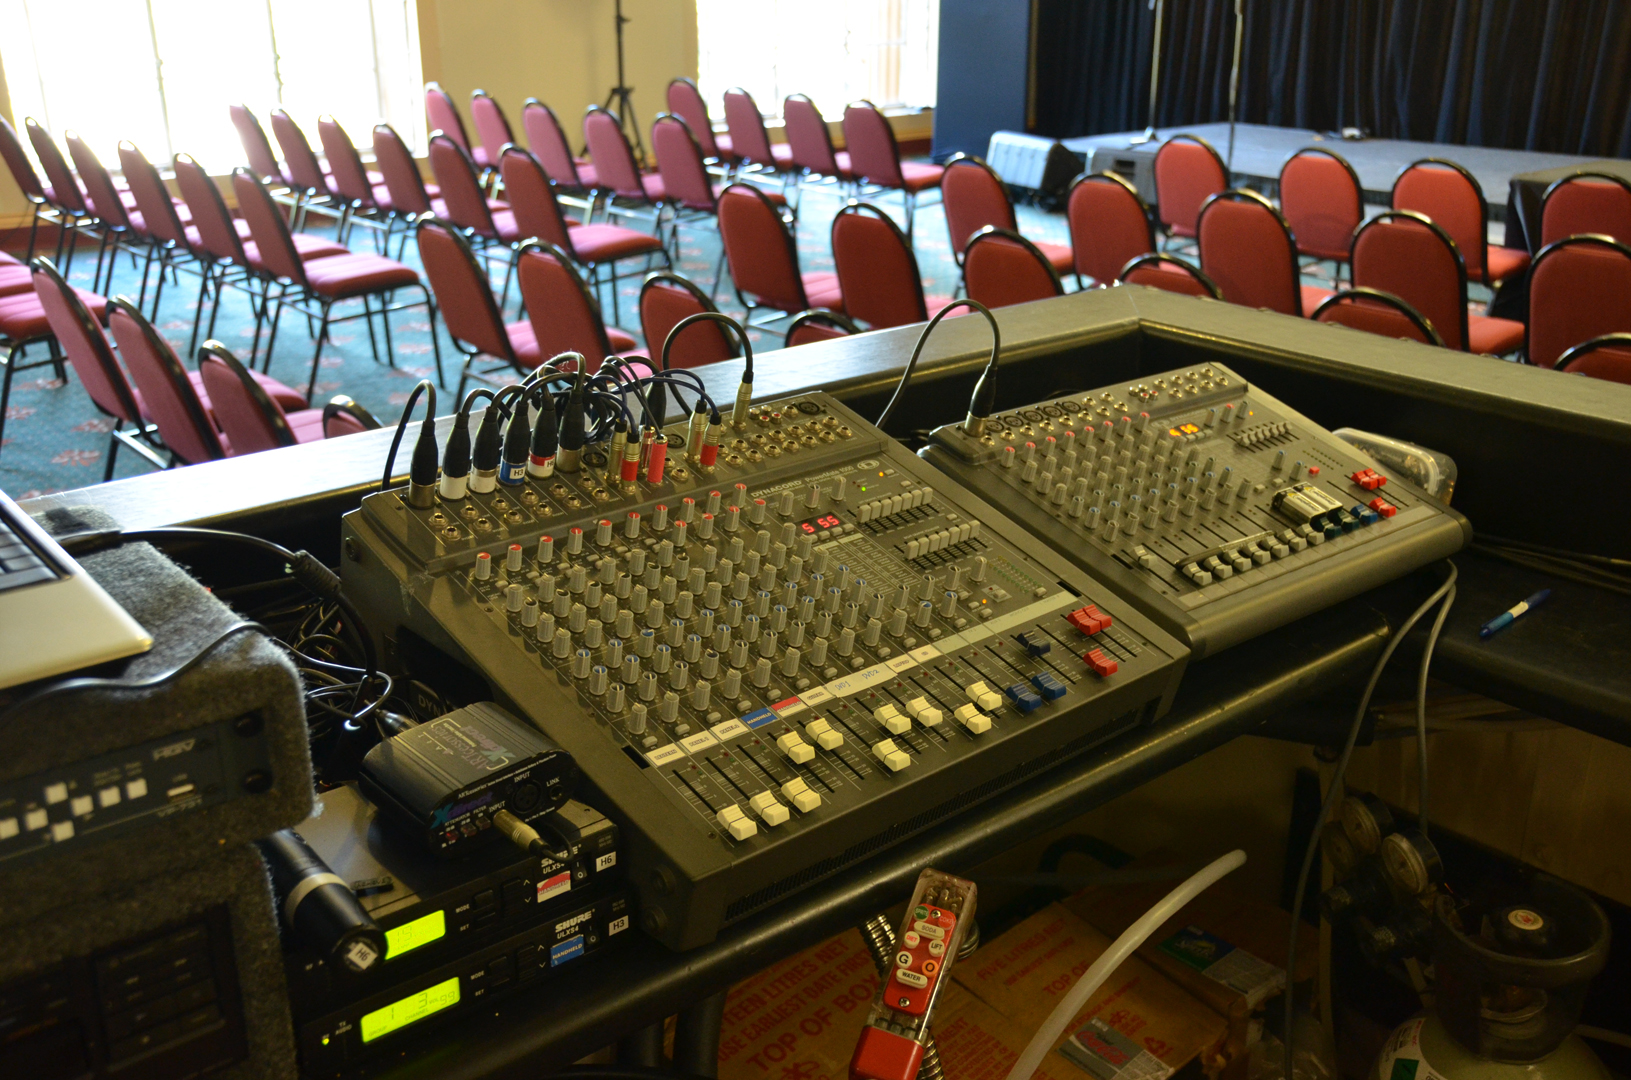 10 CHANNEL SOUND SYSTEMS